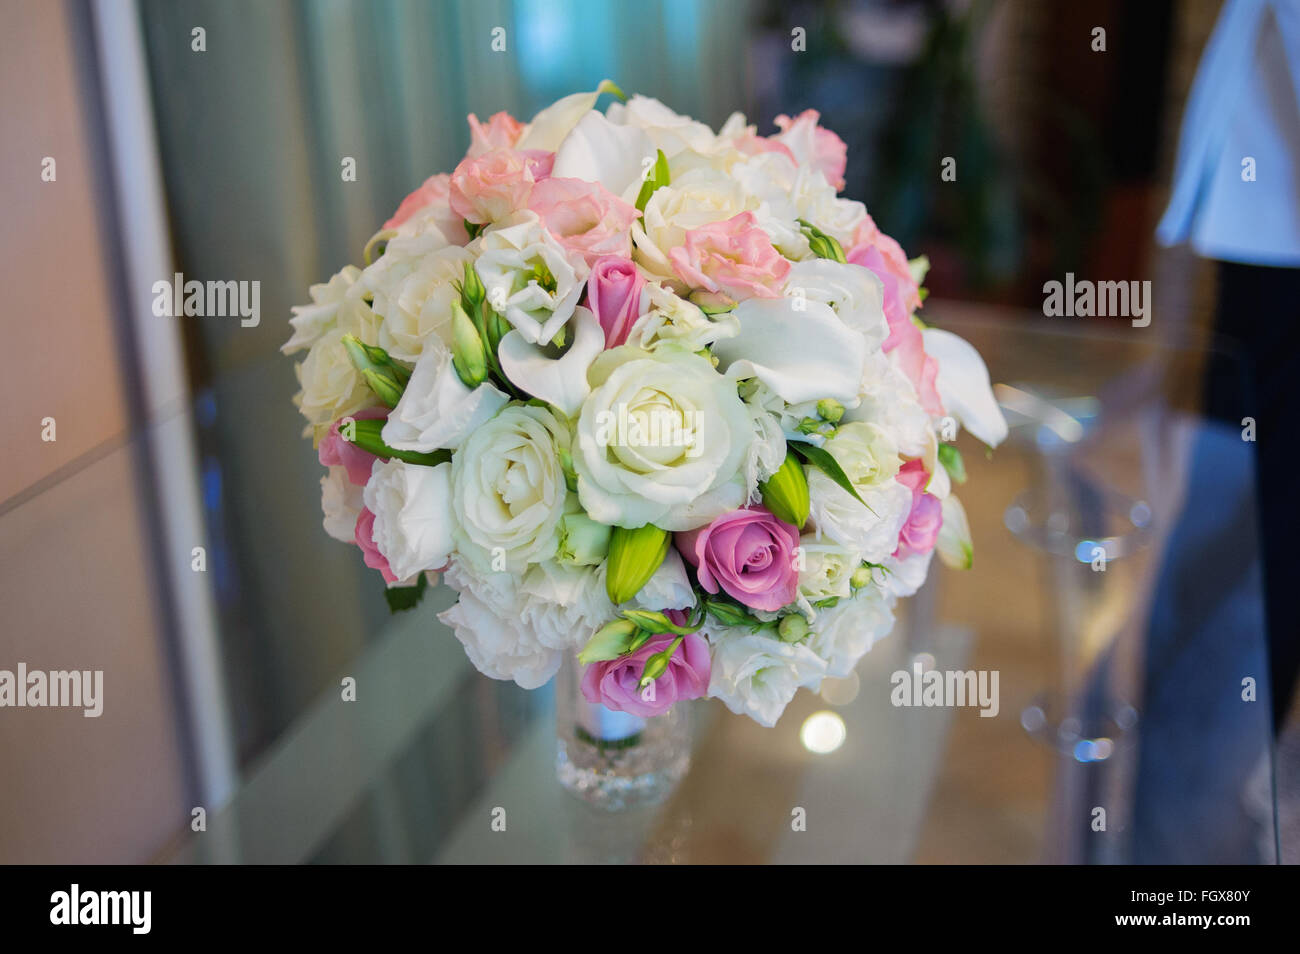 close up of beautiful wedding bouquet Bride on table - Stock Image